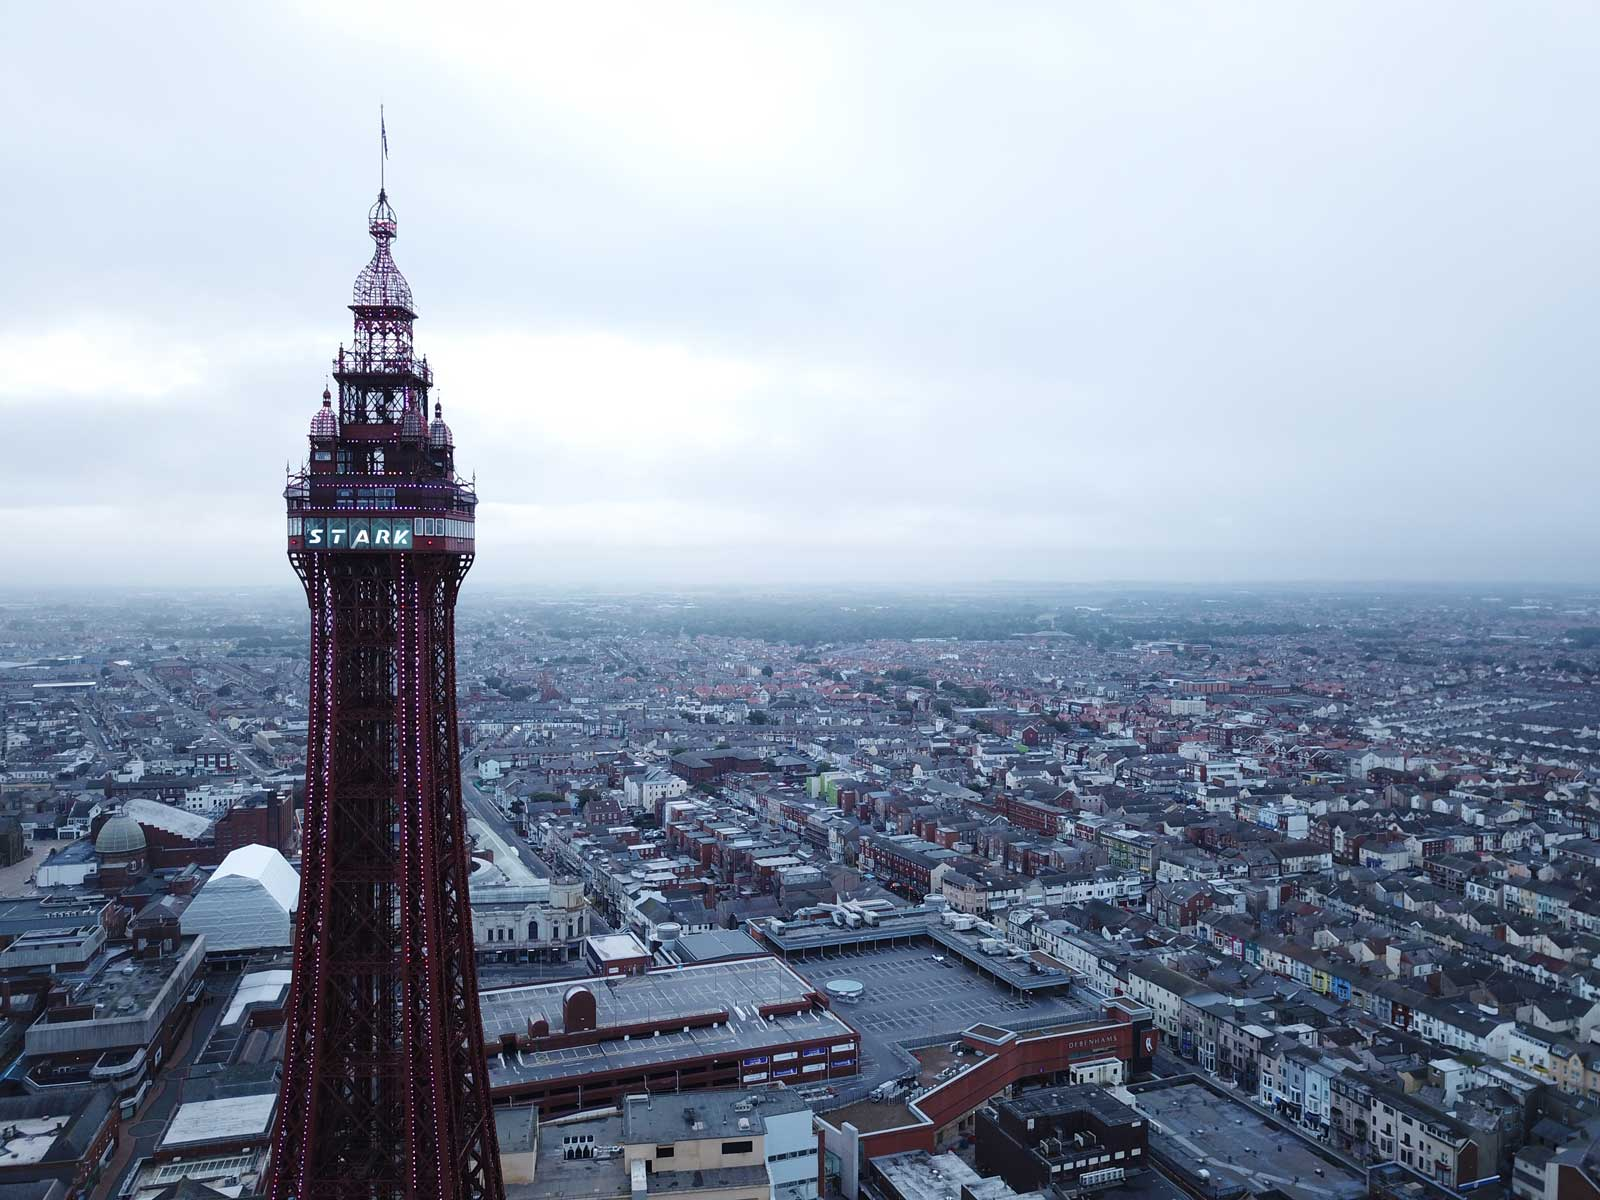 Blackpool Tower gets an Iron Man-inspired Marvel makeover. Photo courtesy Madame Tussauds